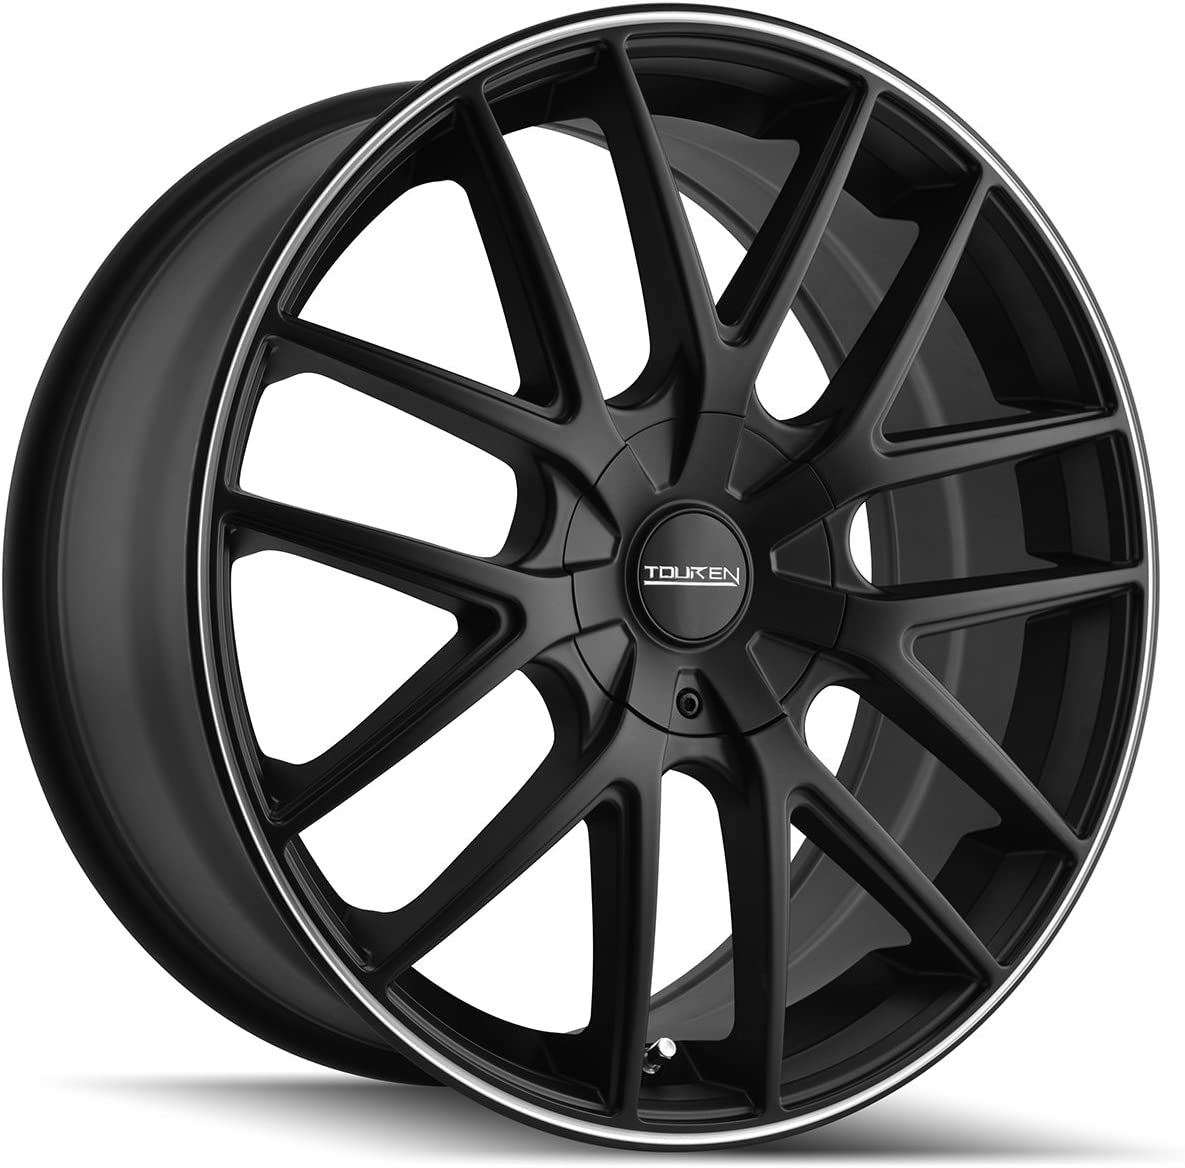 Touren TR60 3260 Matte Black Wheel Max 71% OFF with Ring Our shop OFFers the best service 5 Machined 20x8.5